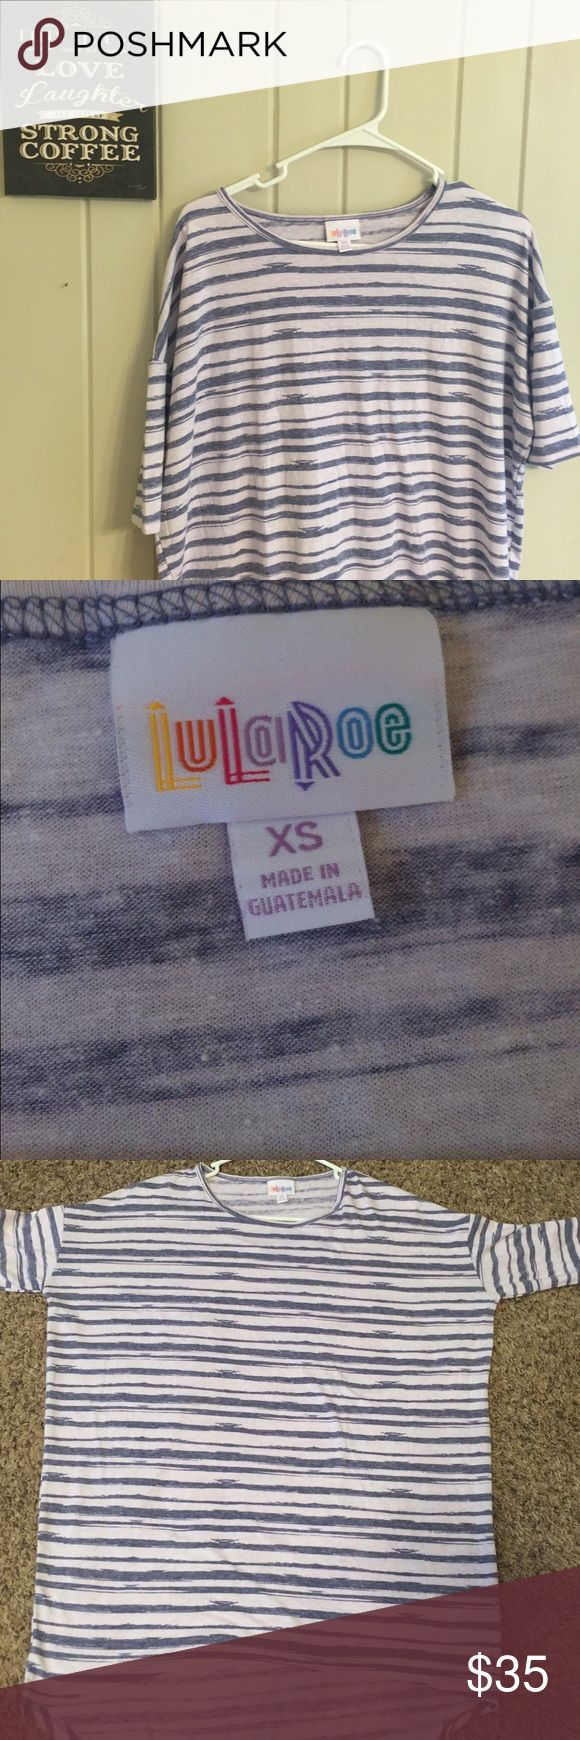 XS LuLaRoe Irma XS LuLaRoe Irma tunic top. Brand new without tags. Made in Guatemala. Super cute with leggings or skinny jeans. Adorable striped pattern that would be cute with almost anything! LuLaRoe Tops Tunics